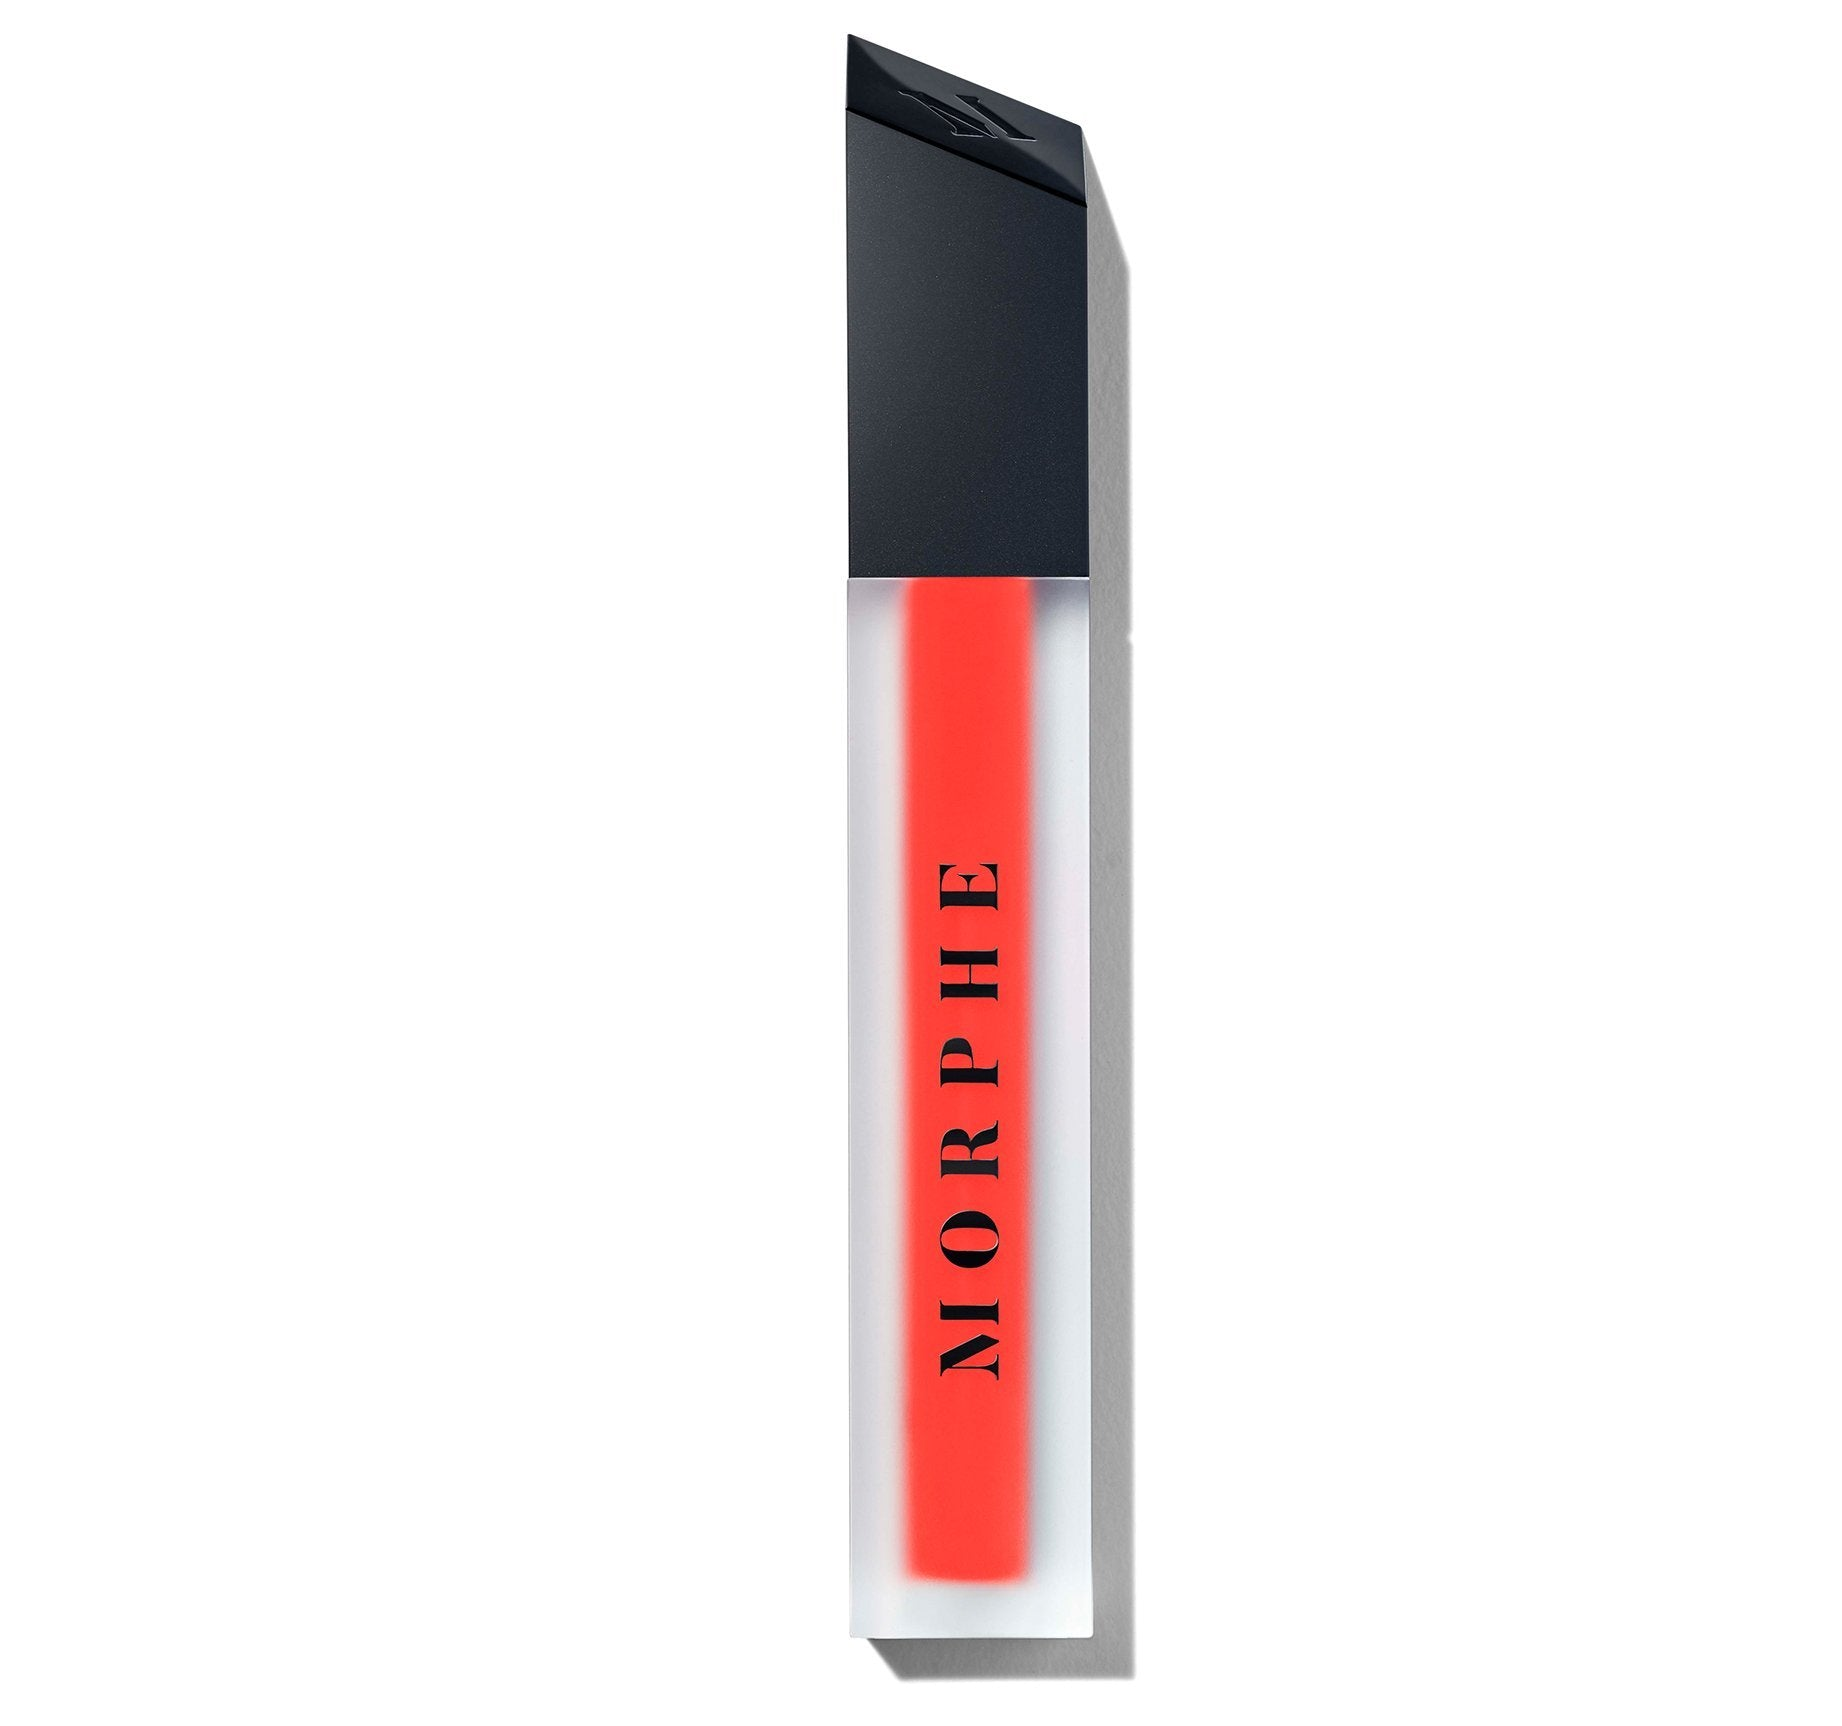 MATTE LIQUID LIPSTICK - HOTSHOT, view larger image